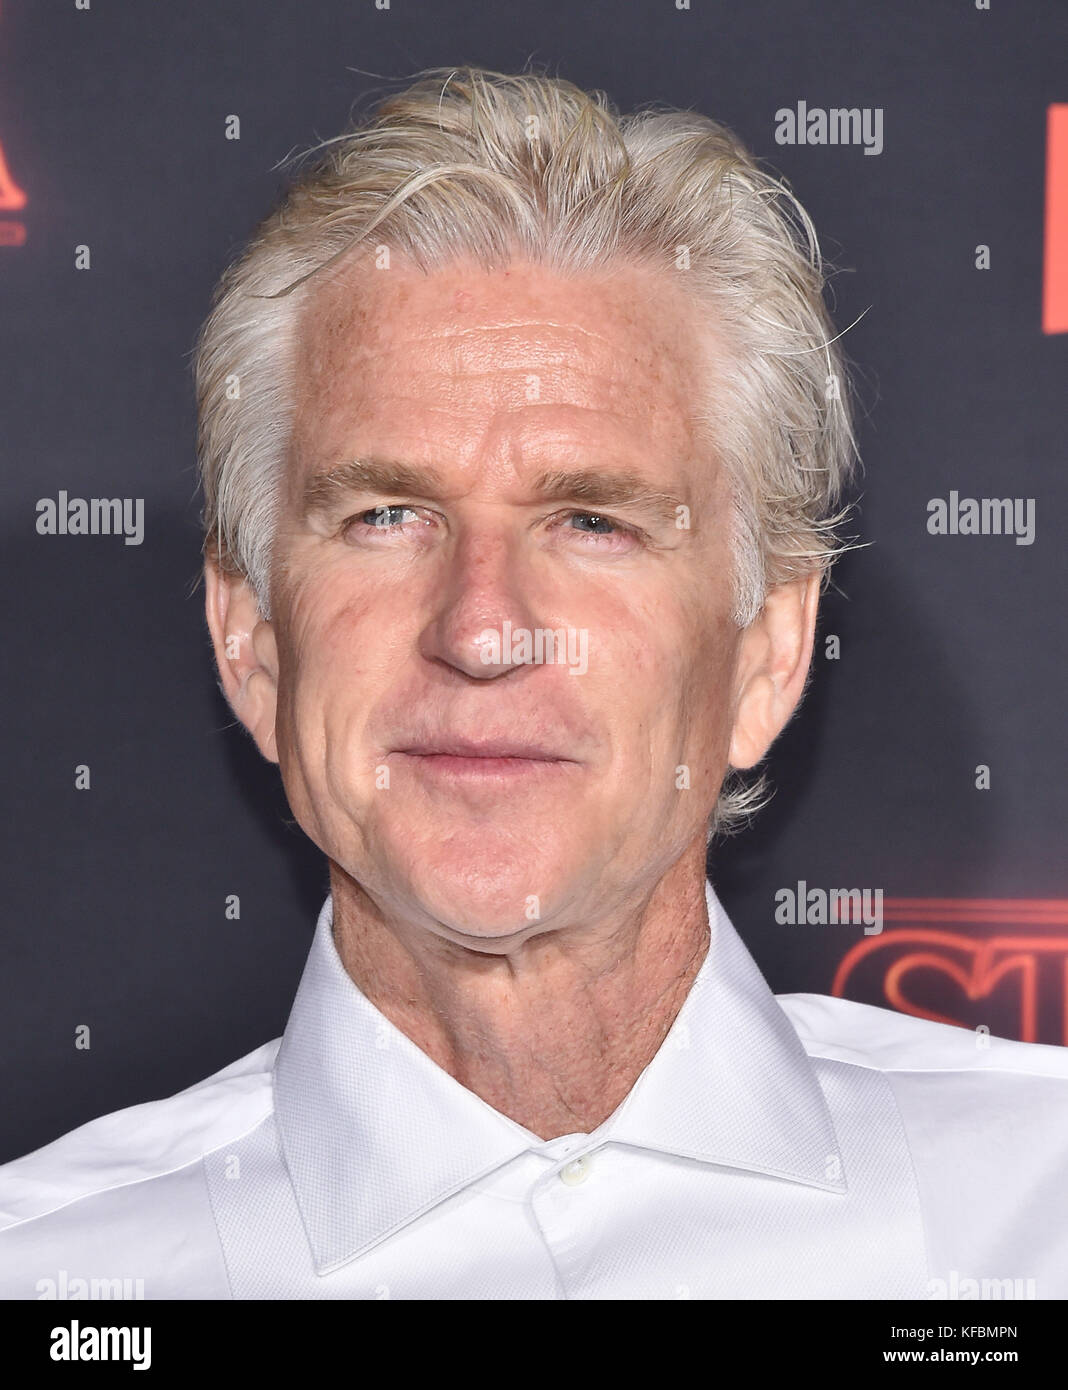 Westwood, California, USA. 26th Oct, 2017. Matthew Modine arrives for the Netflix 'Stranger Things' 2 Premiere - Stock Image